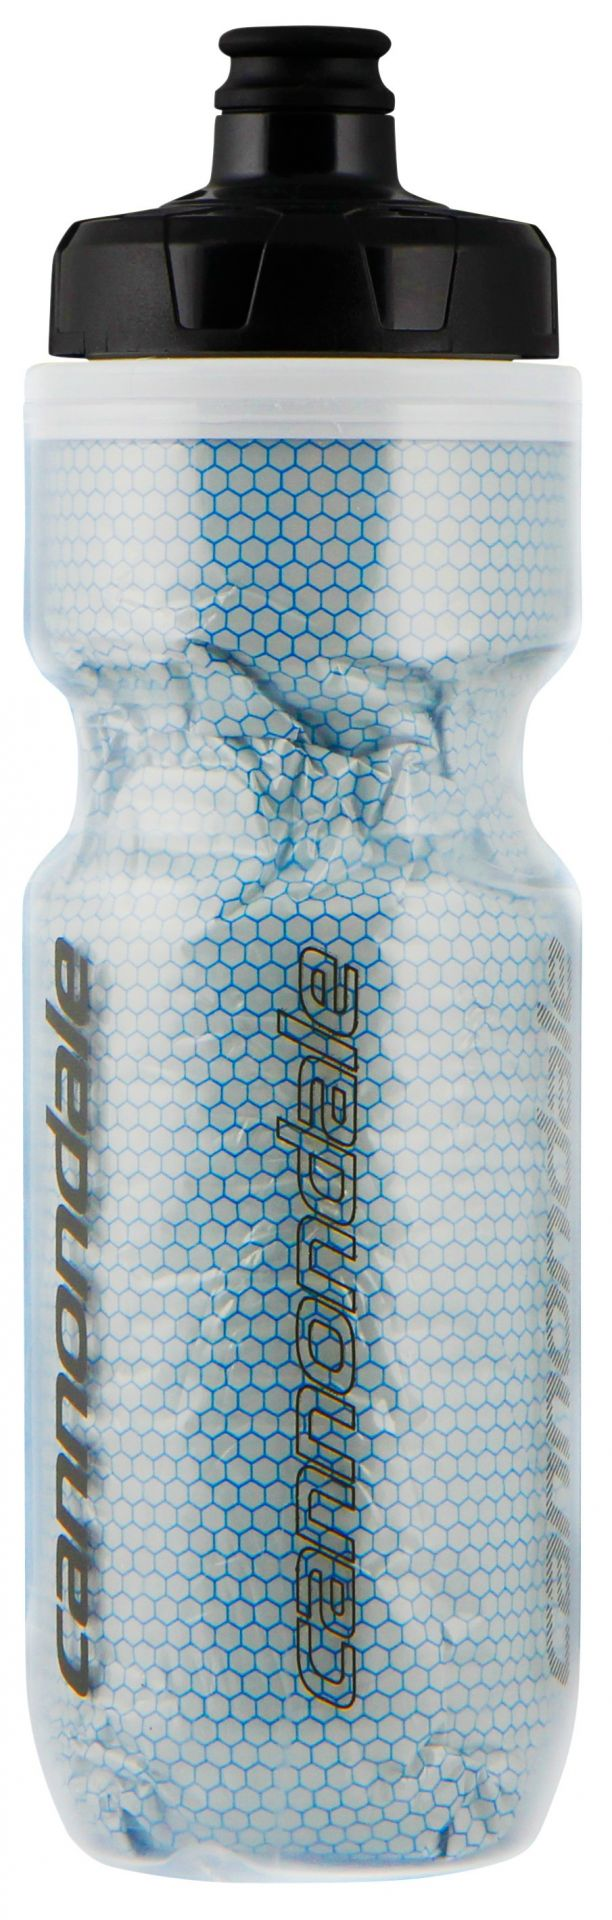 Bidon isotherme Cannondale Fade Insulated Multi 620 ml Gris/bleu